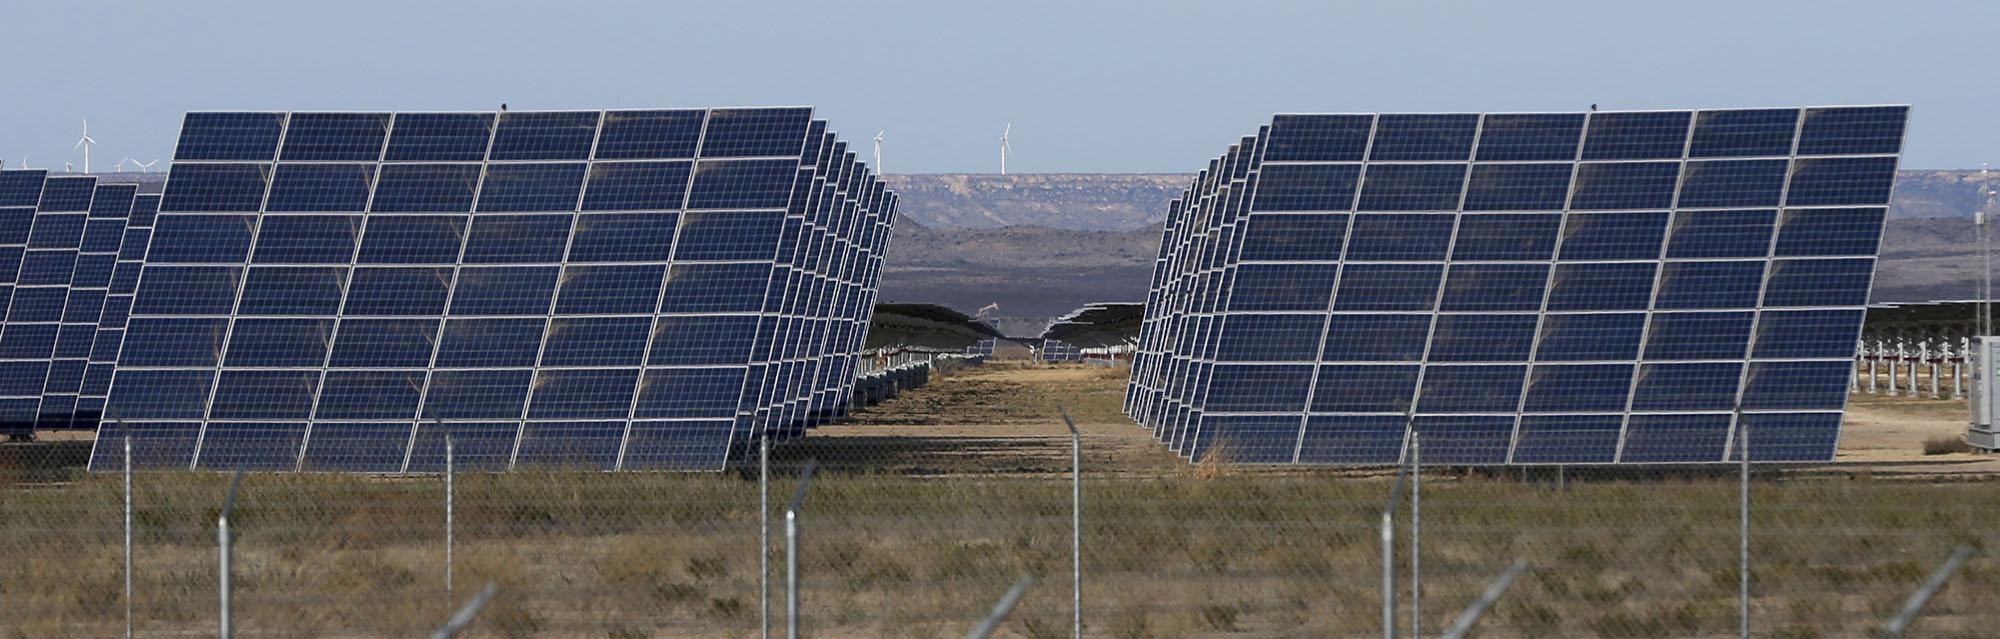 Solar expected to grow in US, world